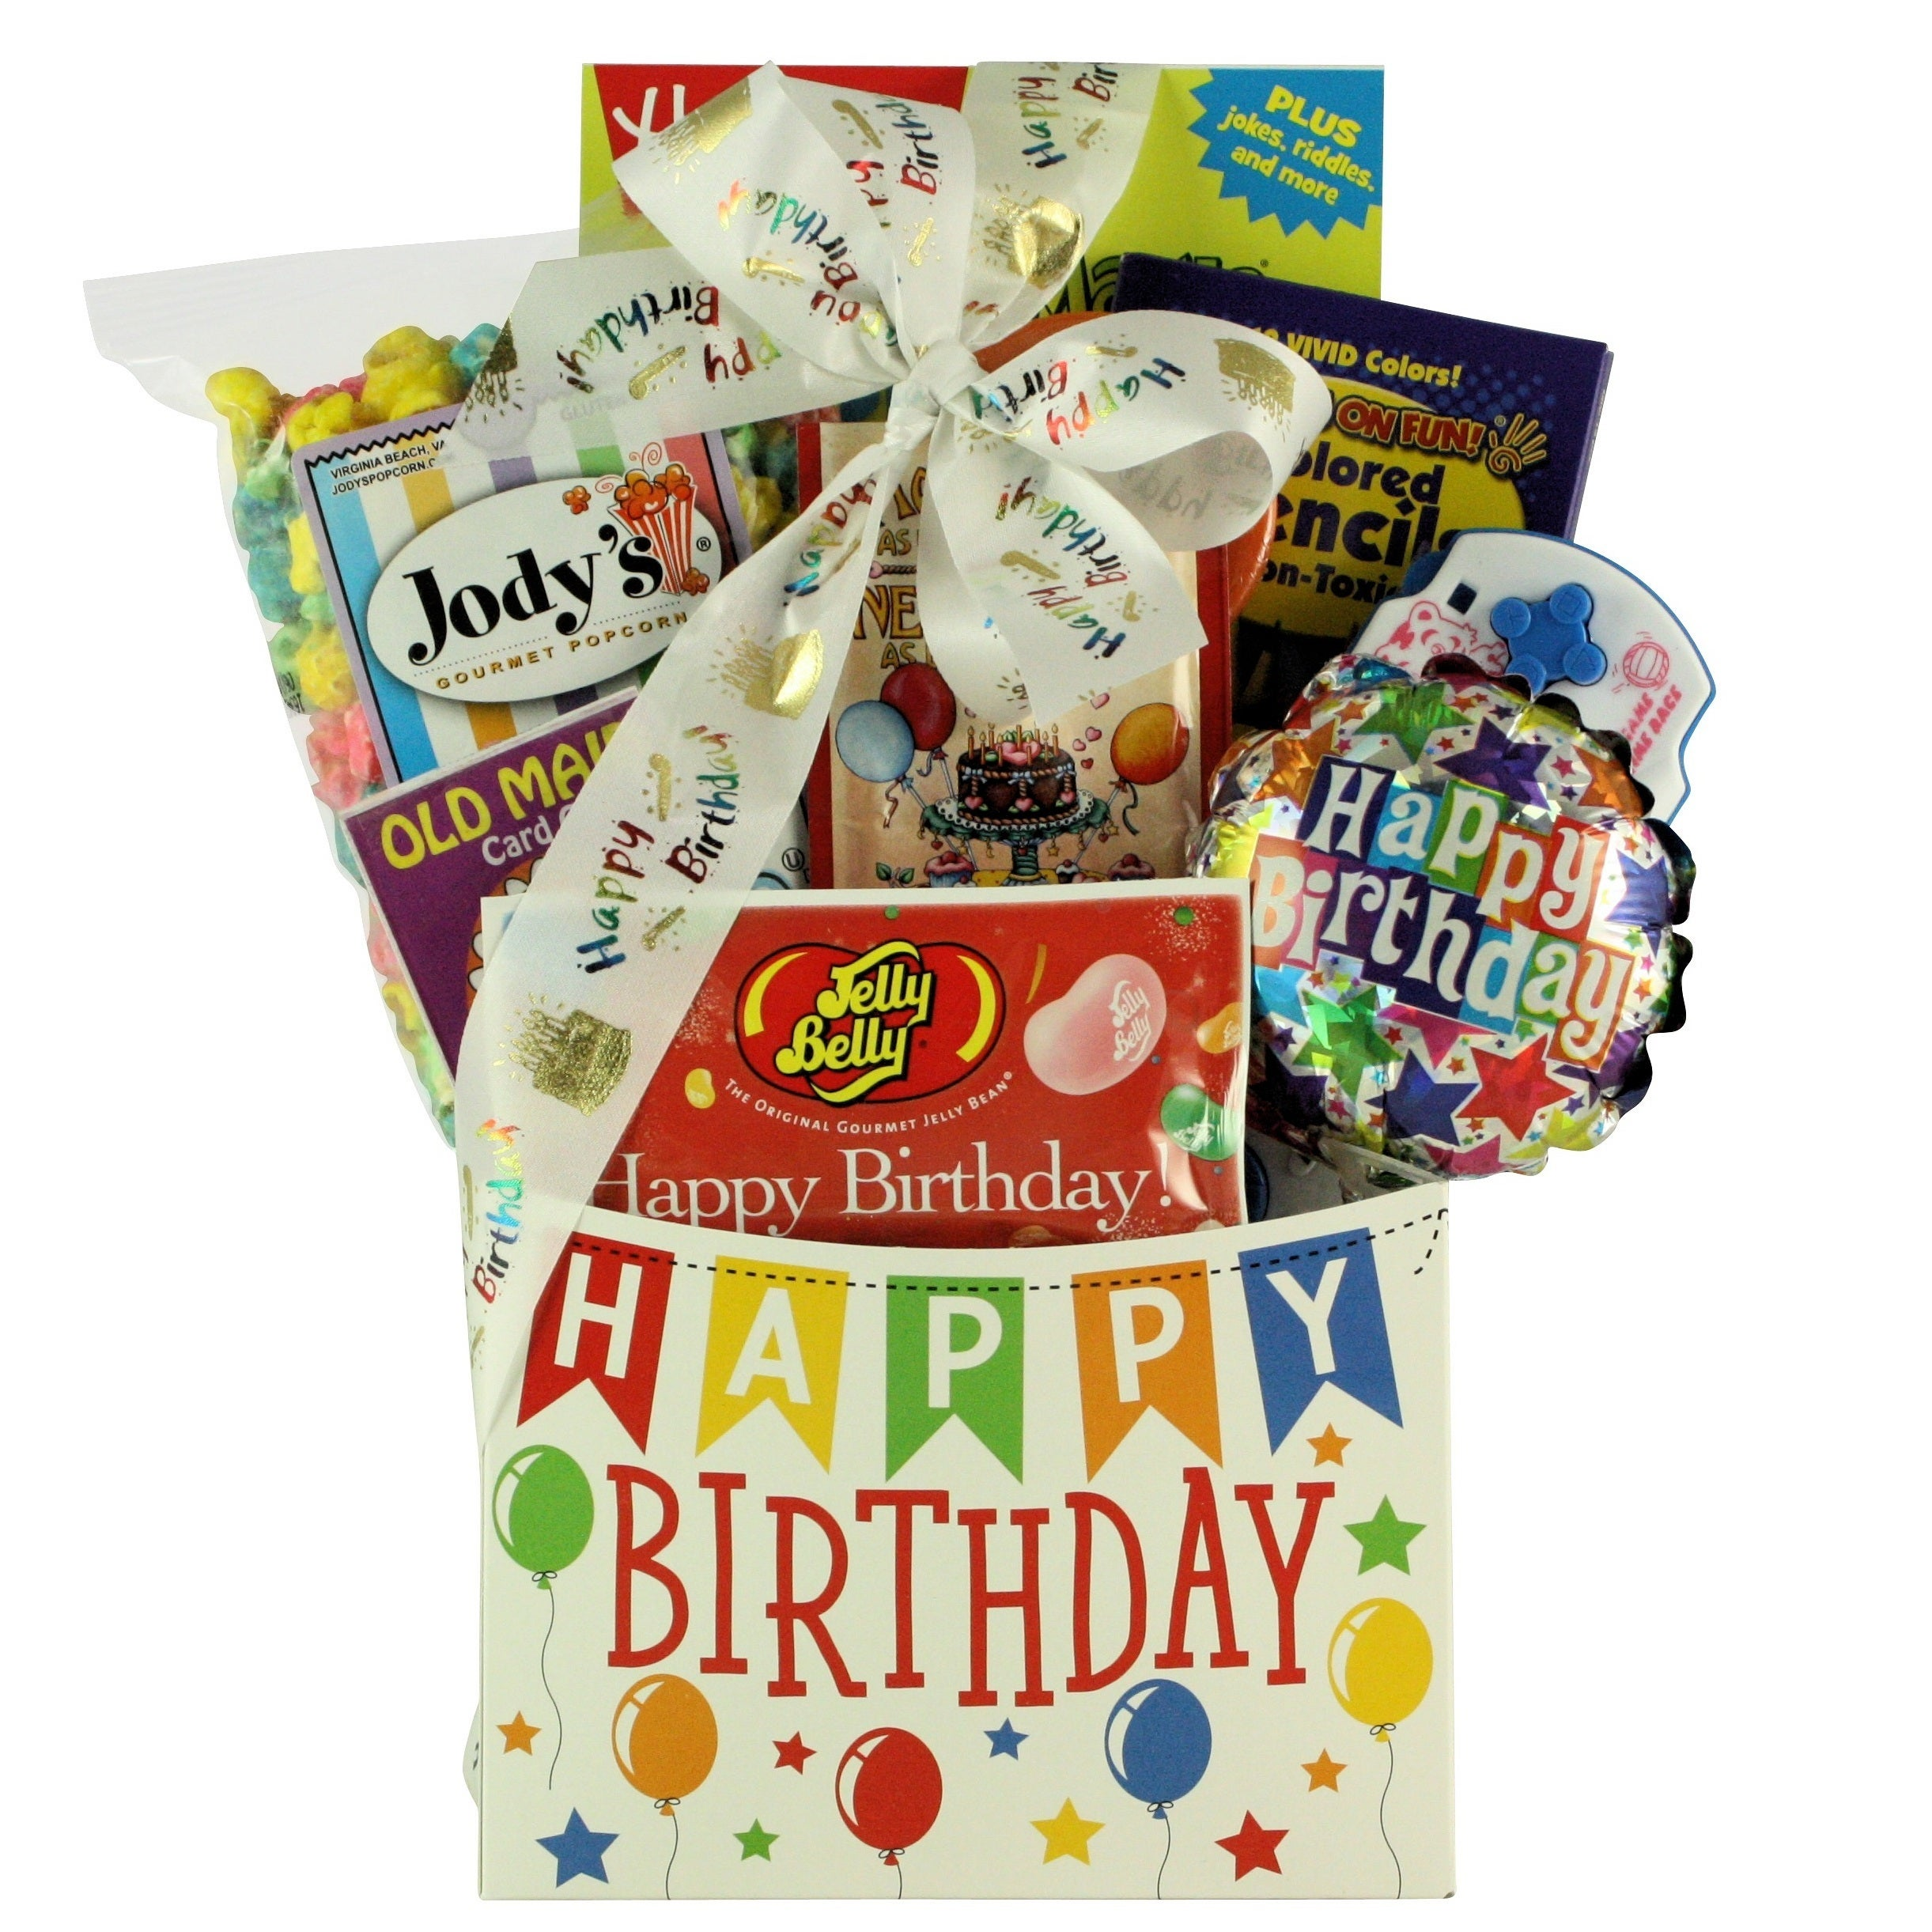 Shop Happy Birthday Wishes Kids Birthday Gift Basket